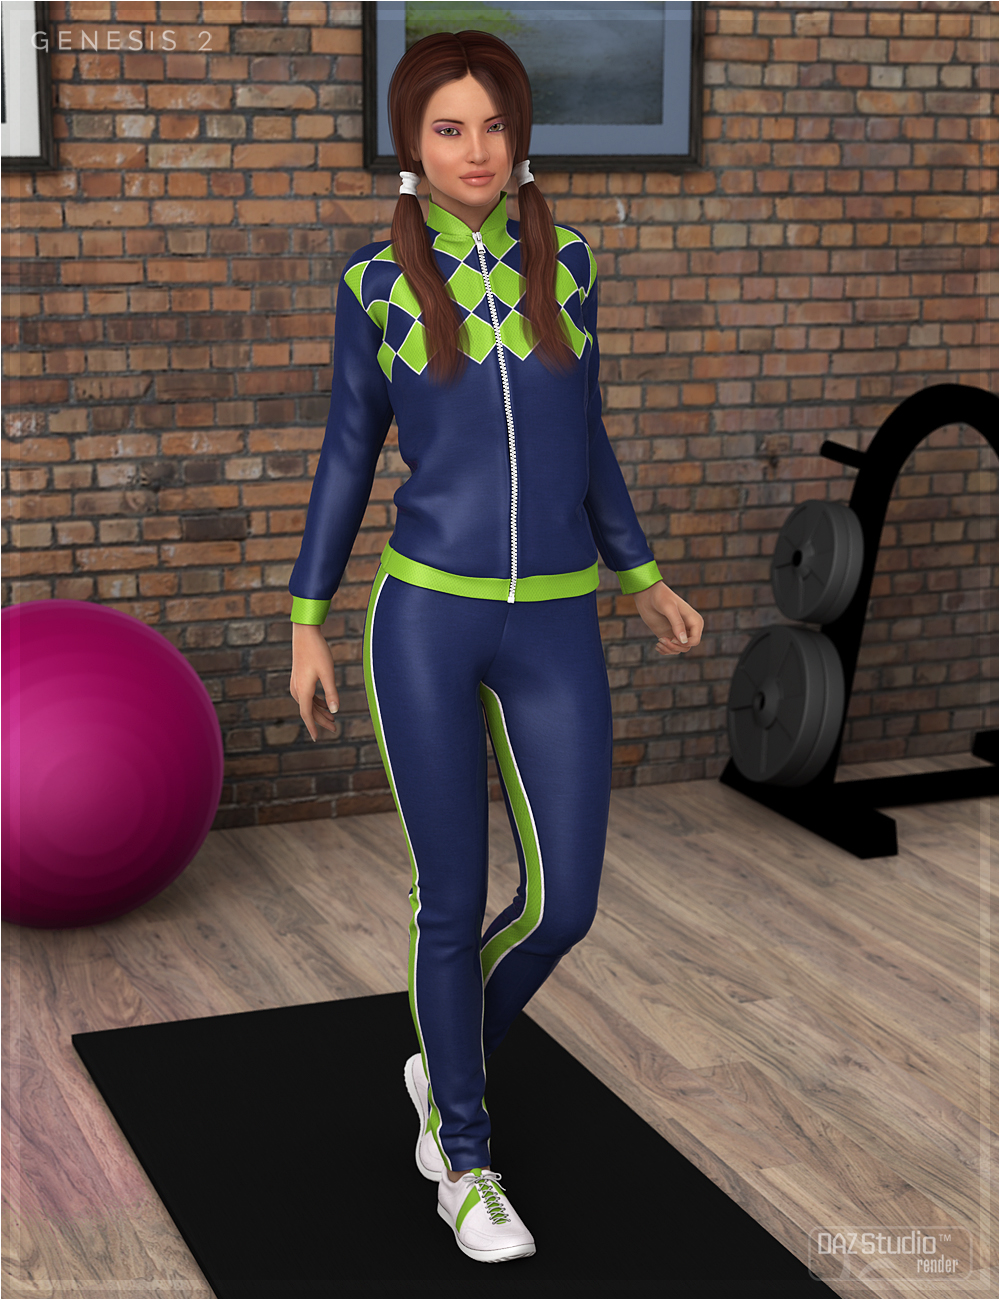 Textures for Pre Workout Outfit by: OziChick, 3D Models by Daz 3D